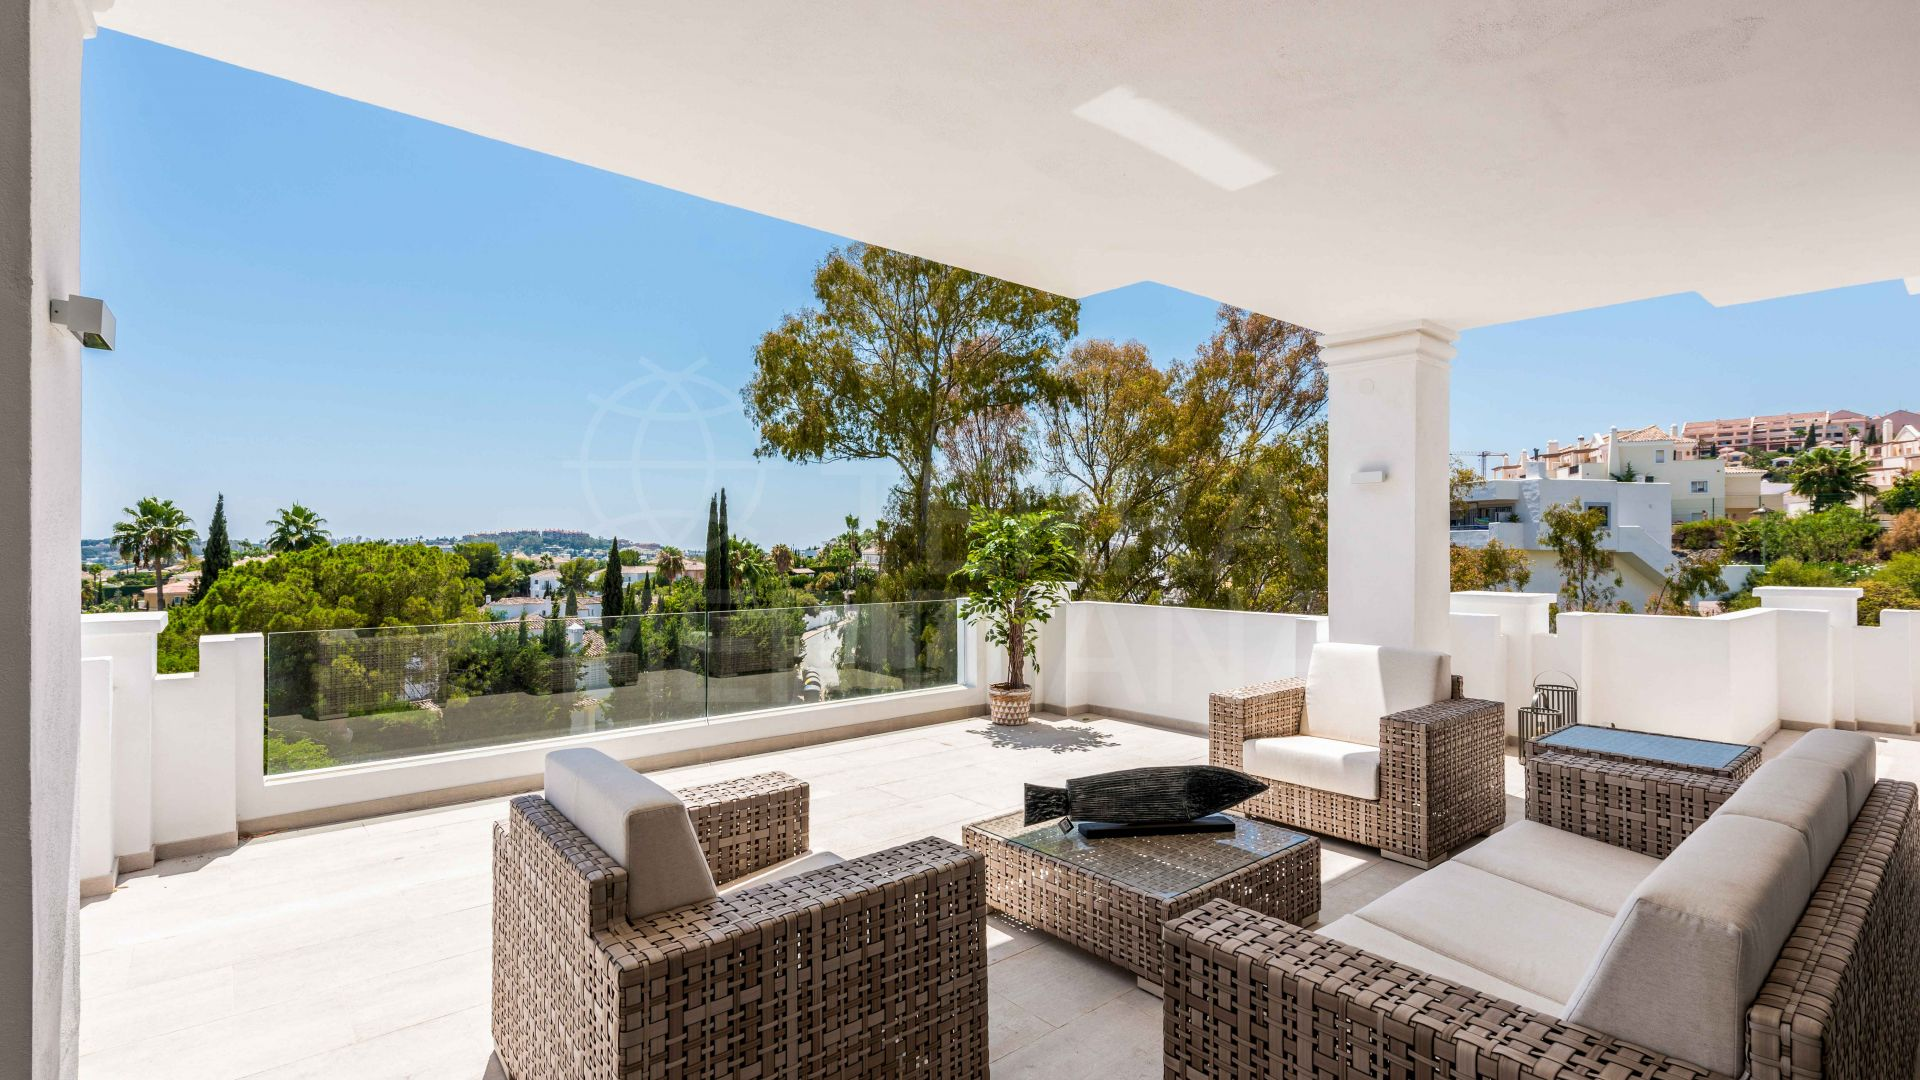 Exemplary Modern Garden Apartment For Sale In 9 Lions Residences Nueva Andalucia Marbella